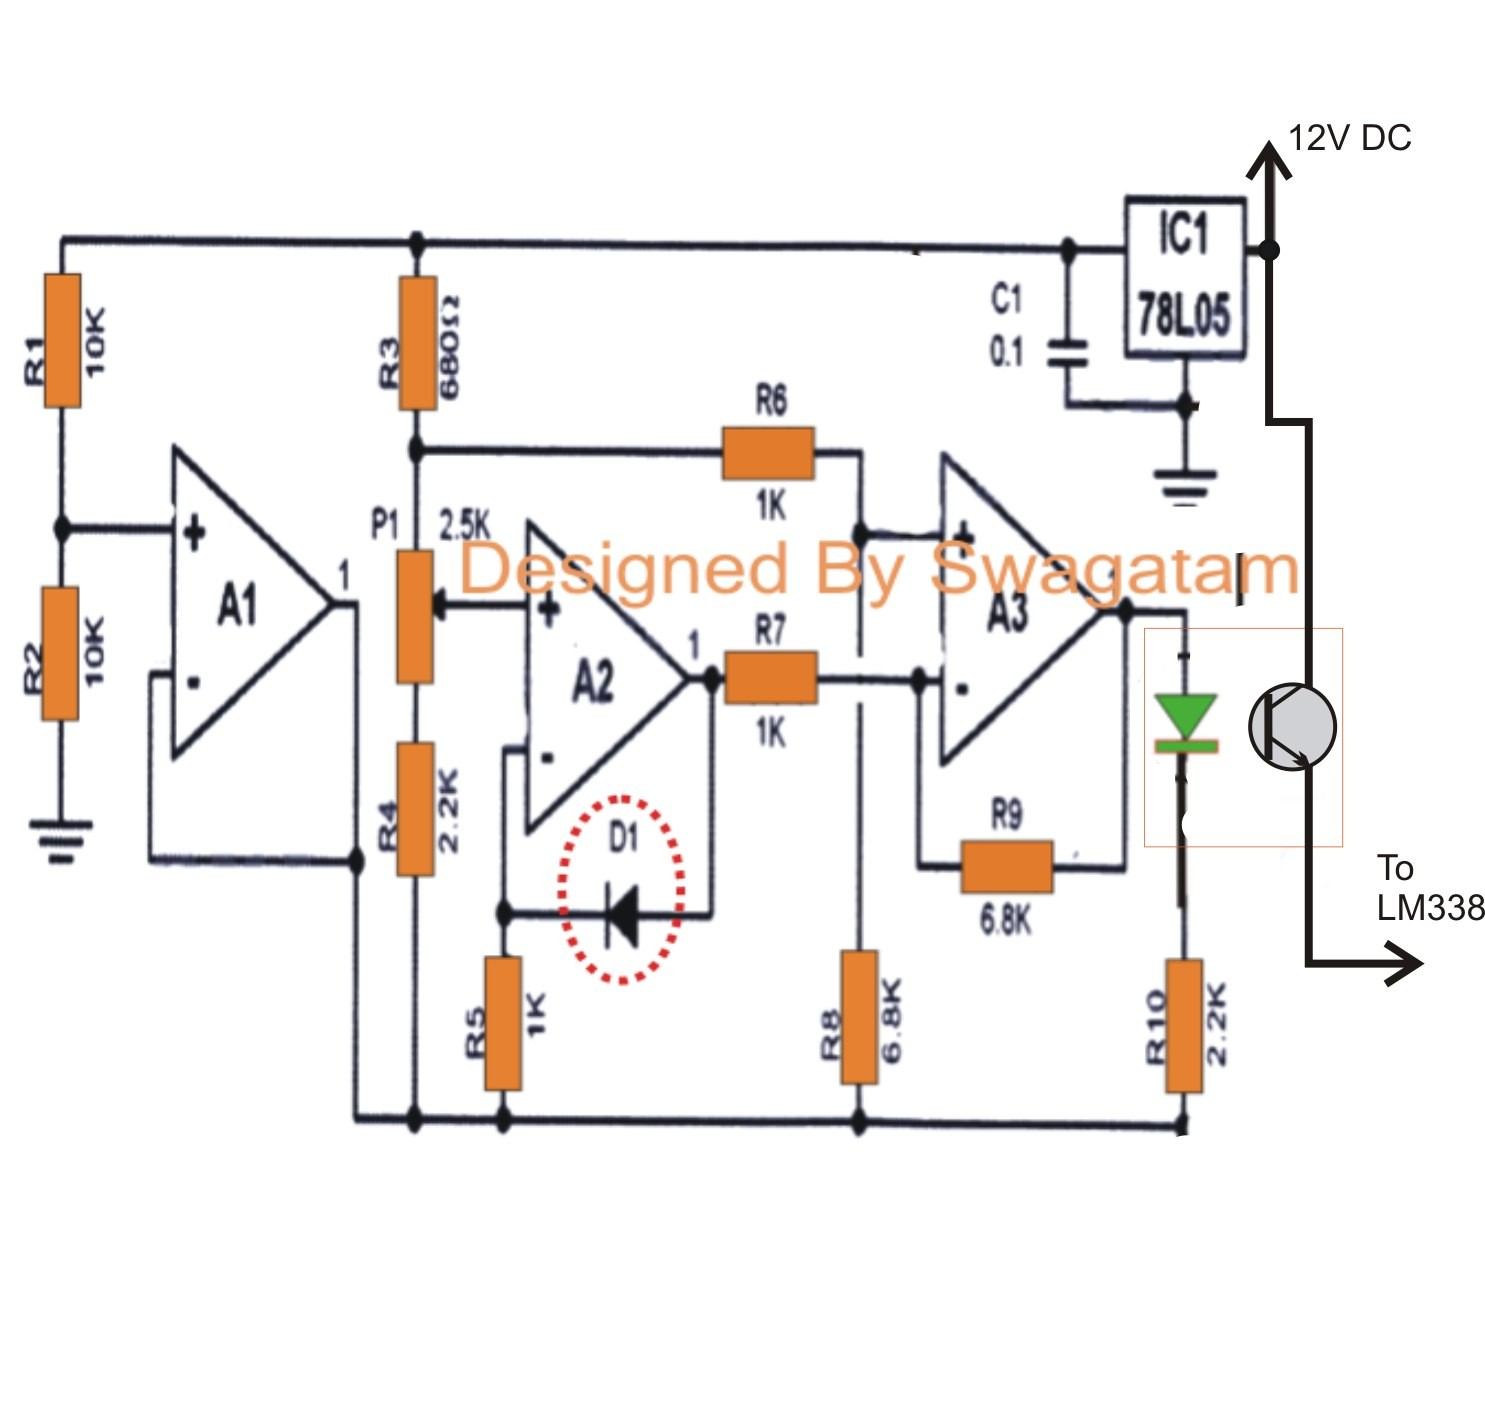 Diy Car Battery Charger Circuit Design Ideas Automatic Nicd Diagram Best Circuits Wiring Of